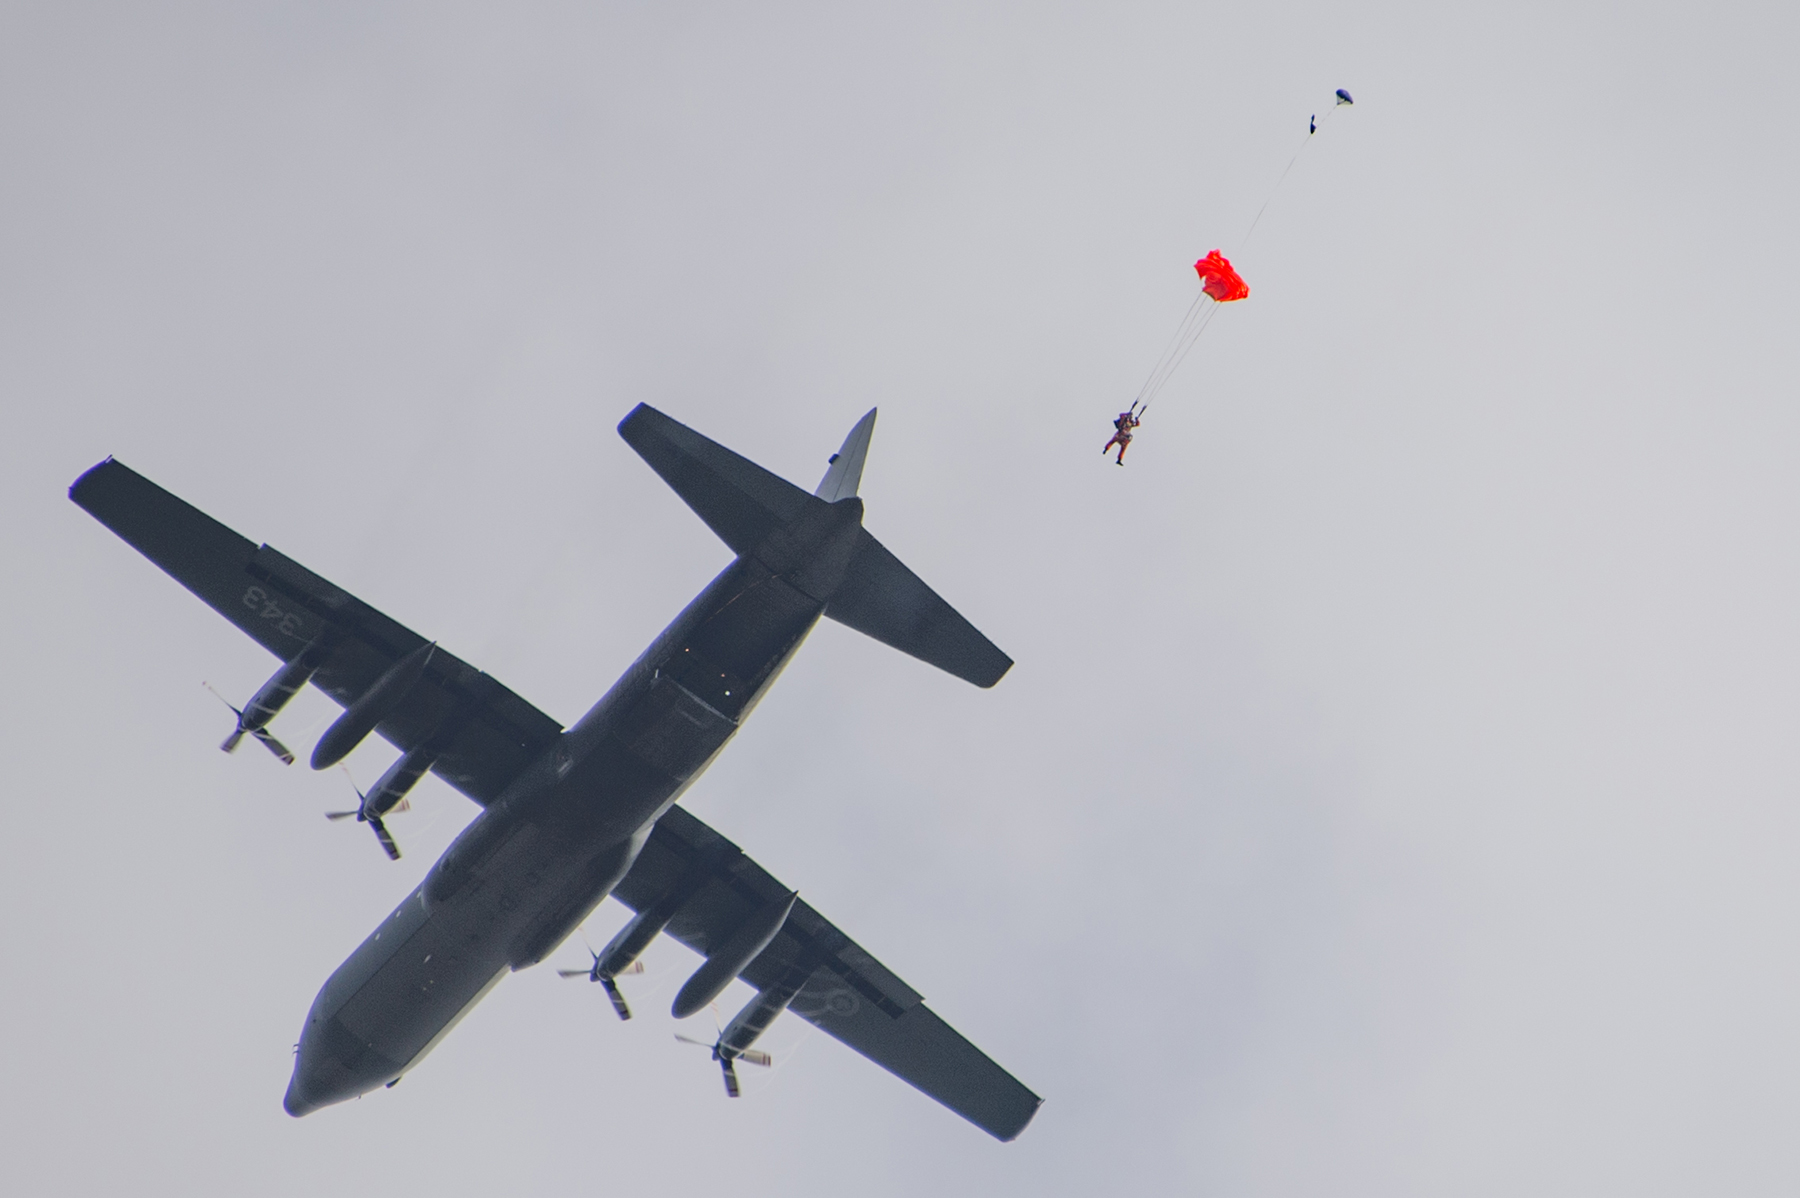 A search and rescue technician jumps from a CC-130 Hercules aircraft to a simulated aircraft crash site at 14 Wing Greenwood, Nova Scotia, on October 5, 2018, during 413 Transport and Rescue Squadron's search and rescue exercise. PHOTO: Corporal Karen Neate, GD10-2018-0688-098